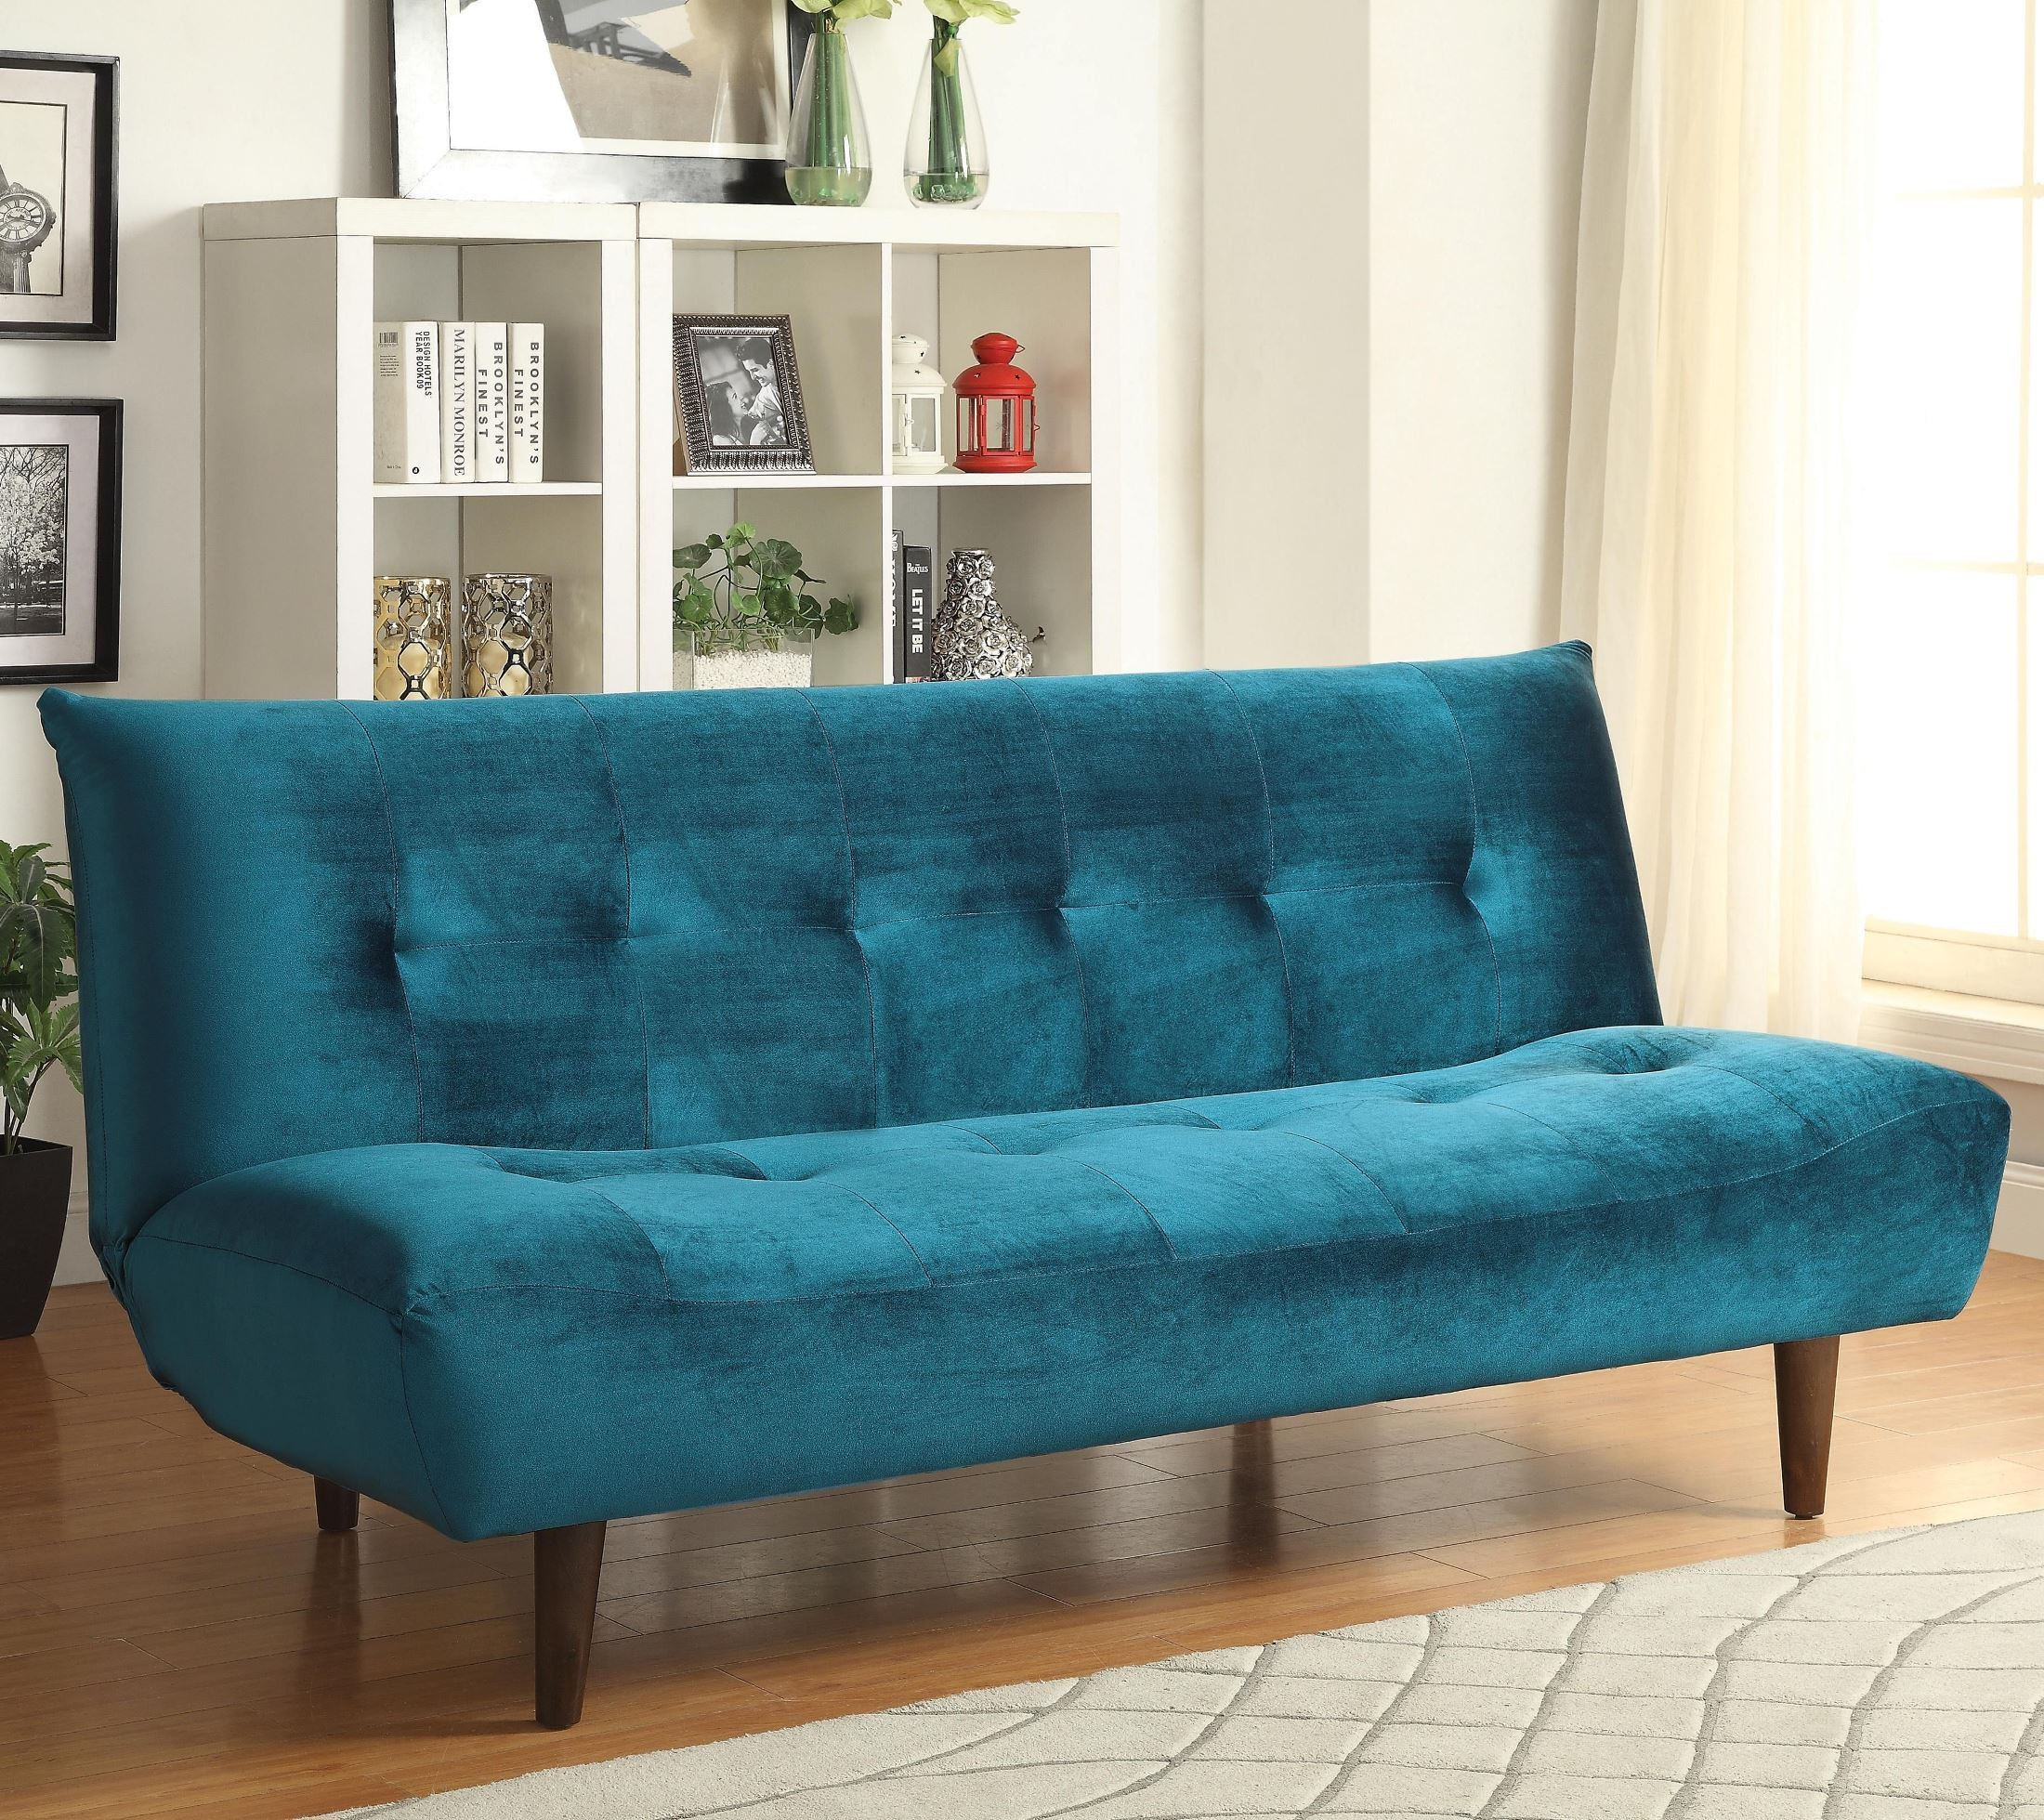 500098 Teal Velvet Tufted Sofa Bed from Coaster (500098